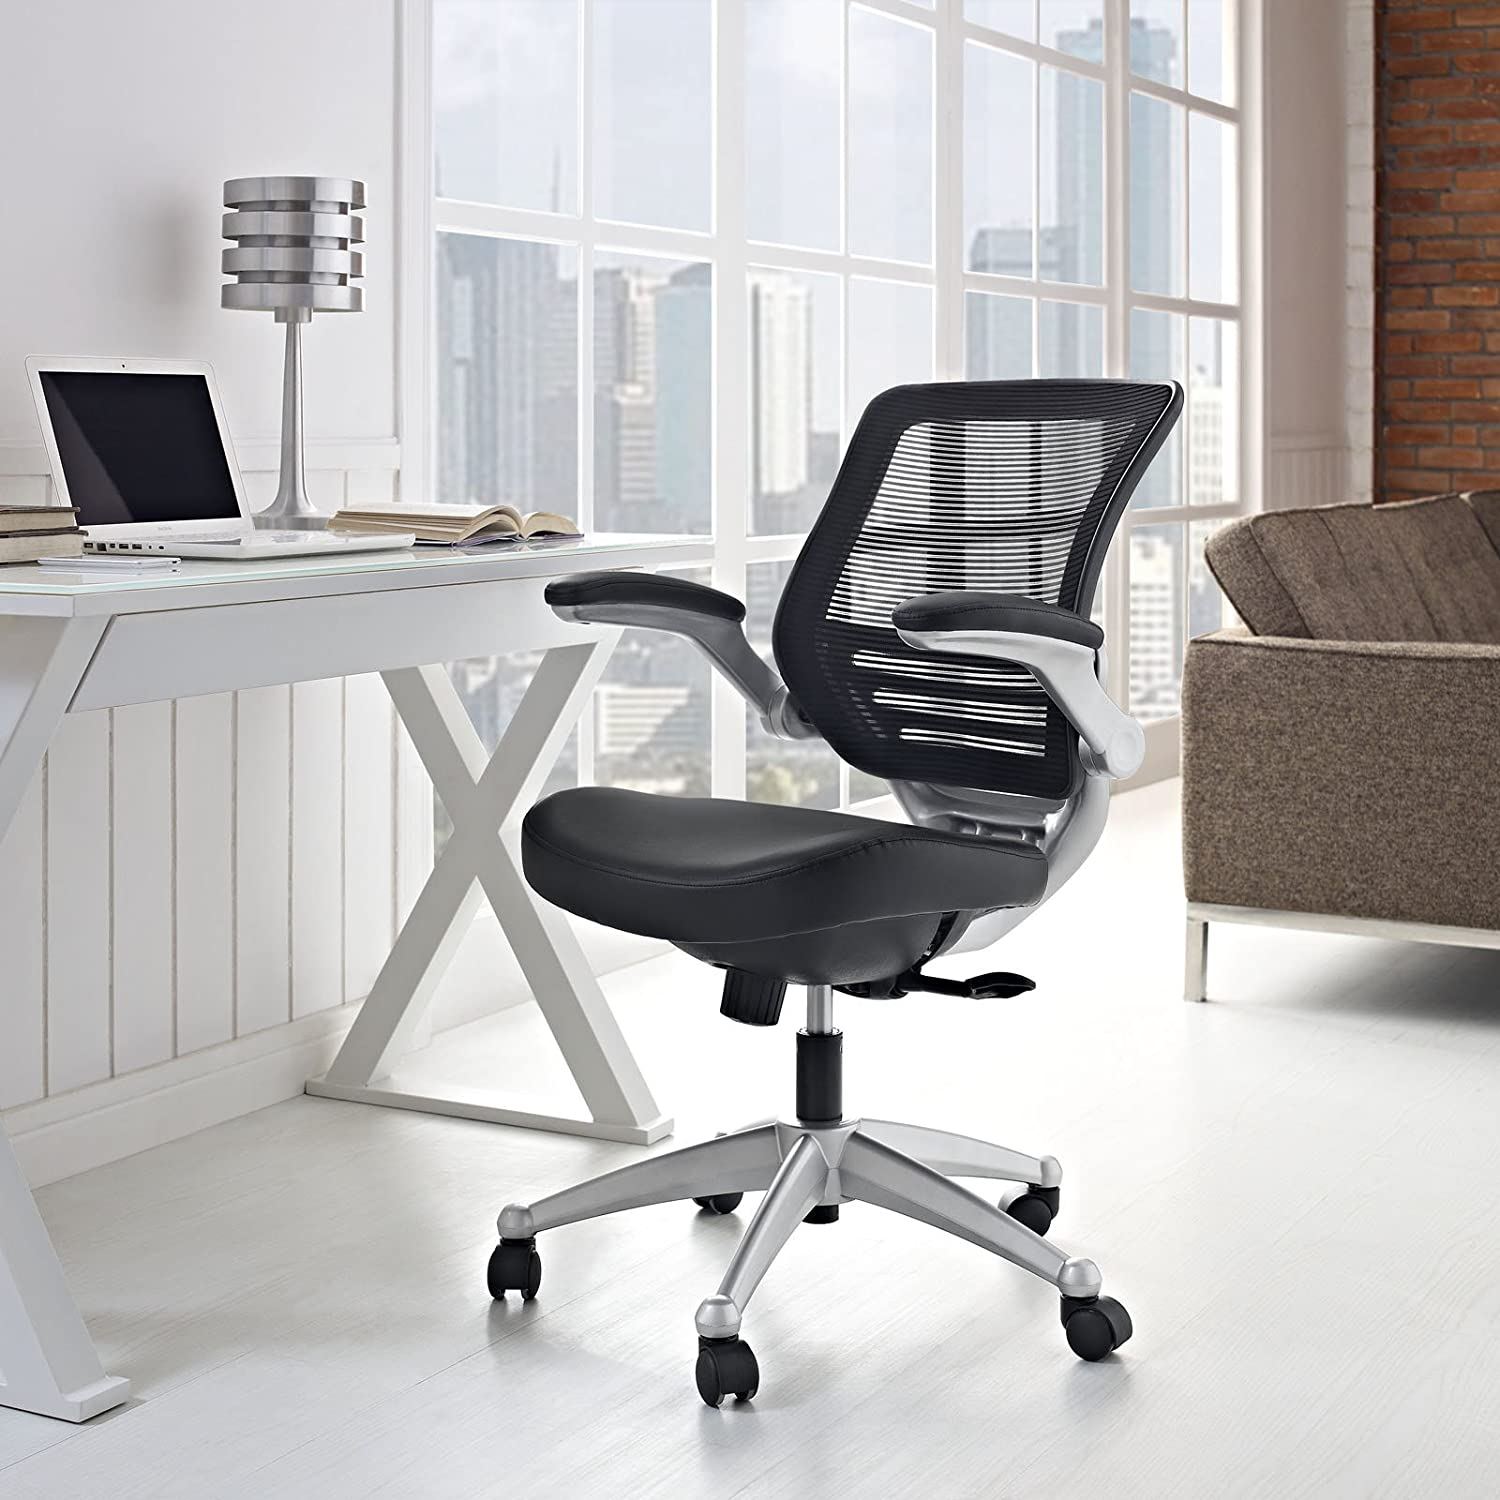 Modway Edge Mesh Back and Leather Seat Office Chair In Black With Flip-Up Arms - Perfect For Computer Desks